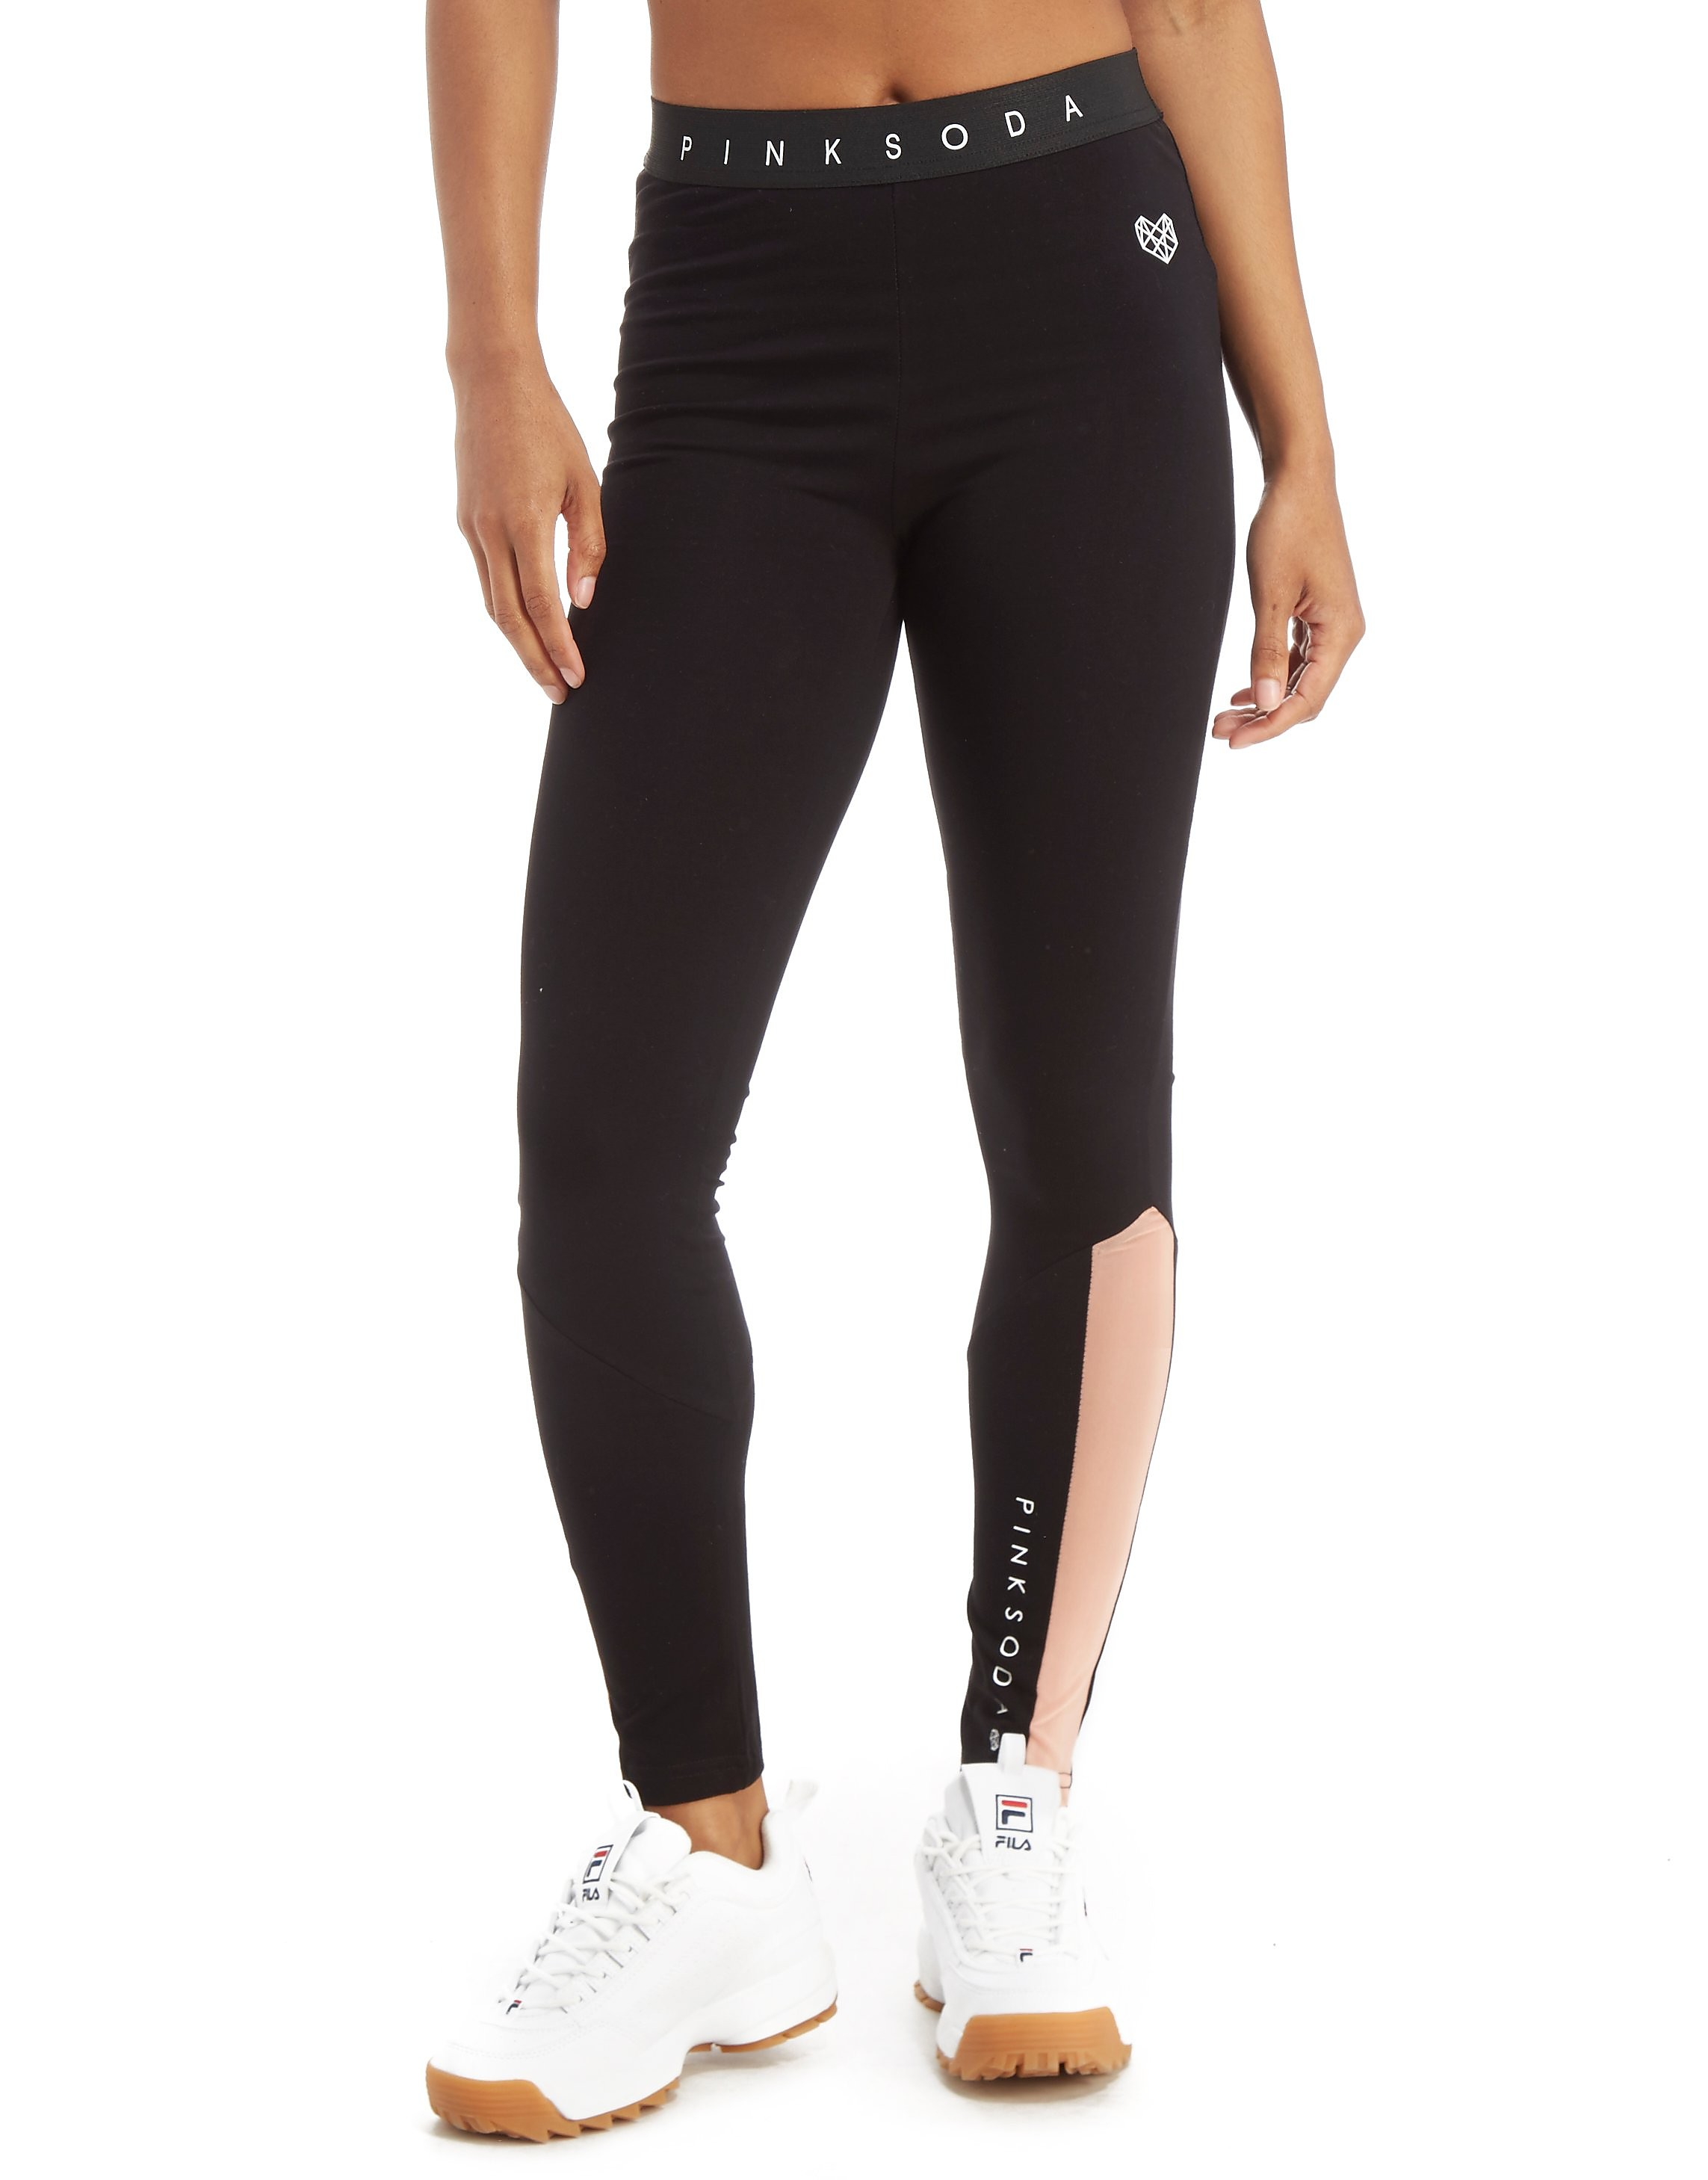 Pink Soda Sport Mesh Panel Leggings